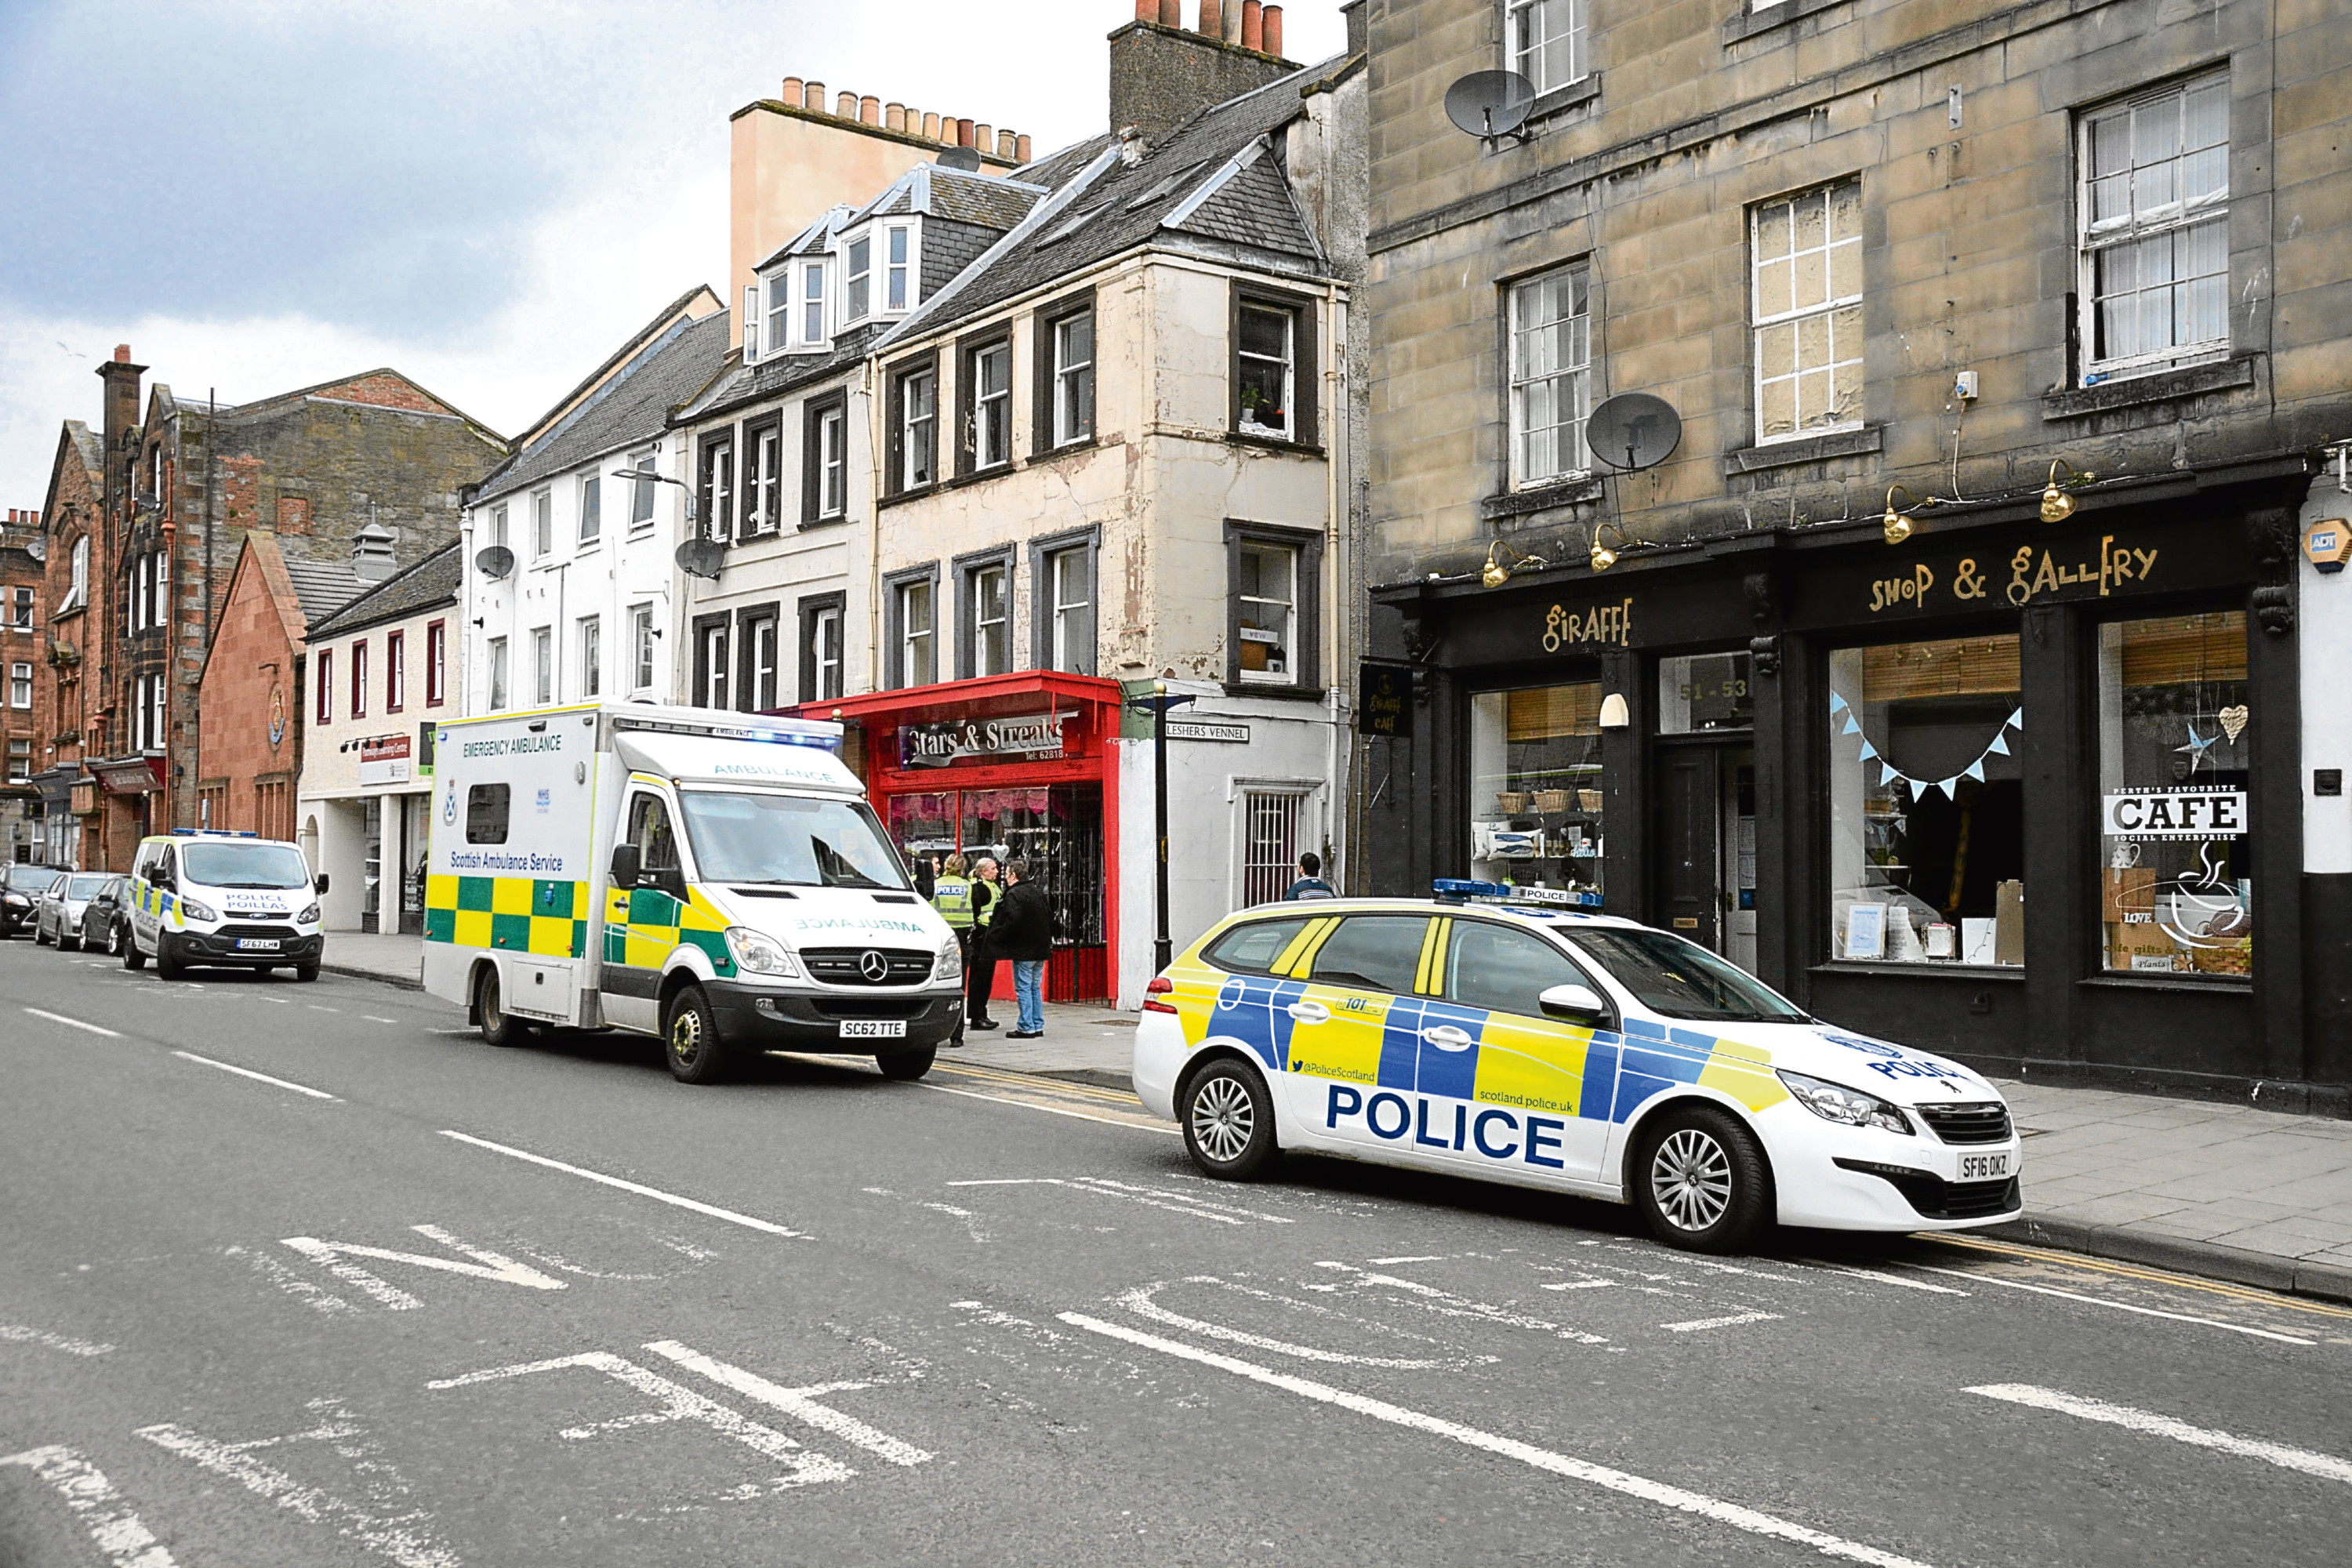 Police and Ambulance in South Street, Perth